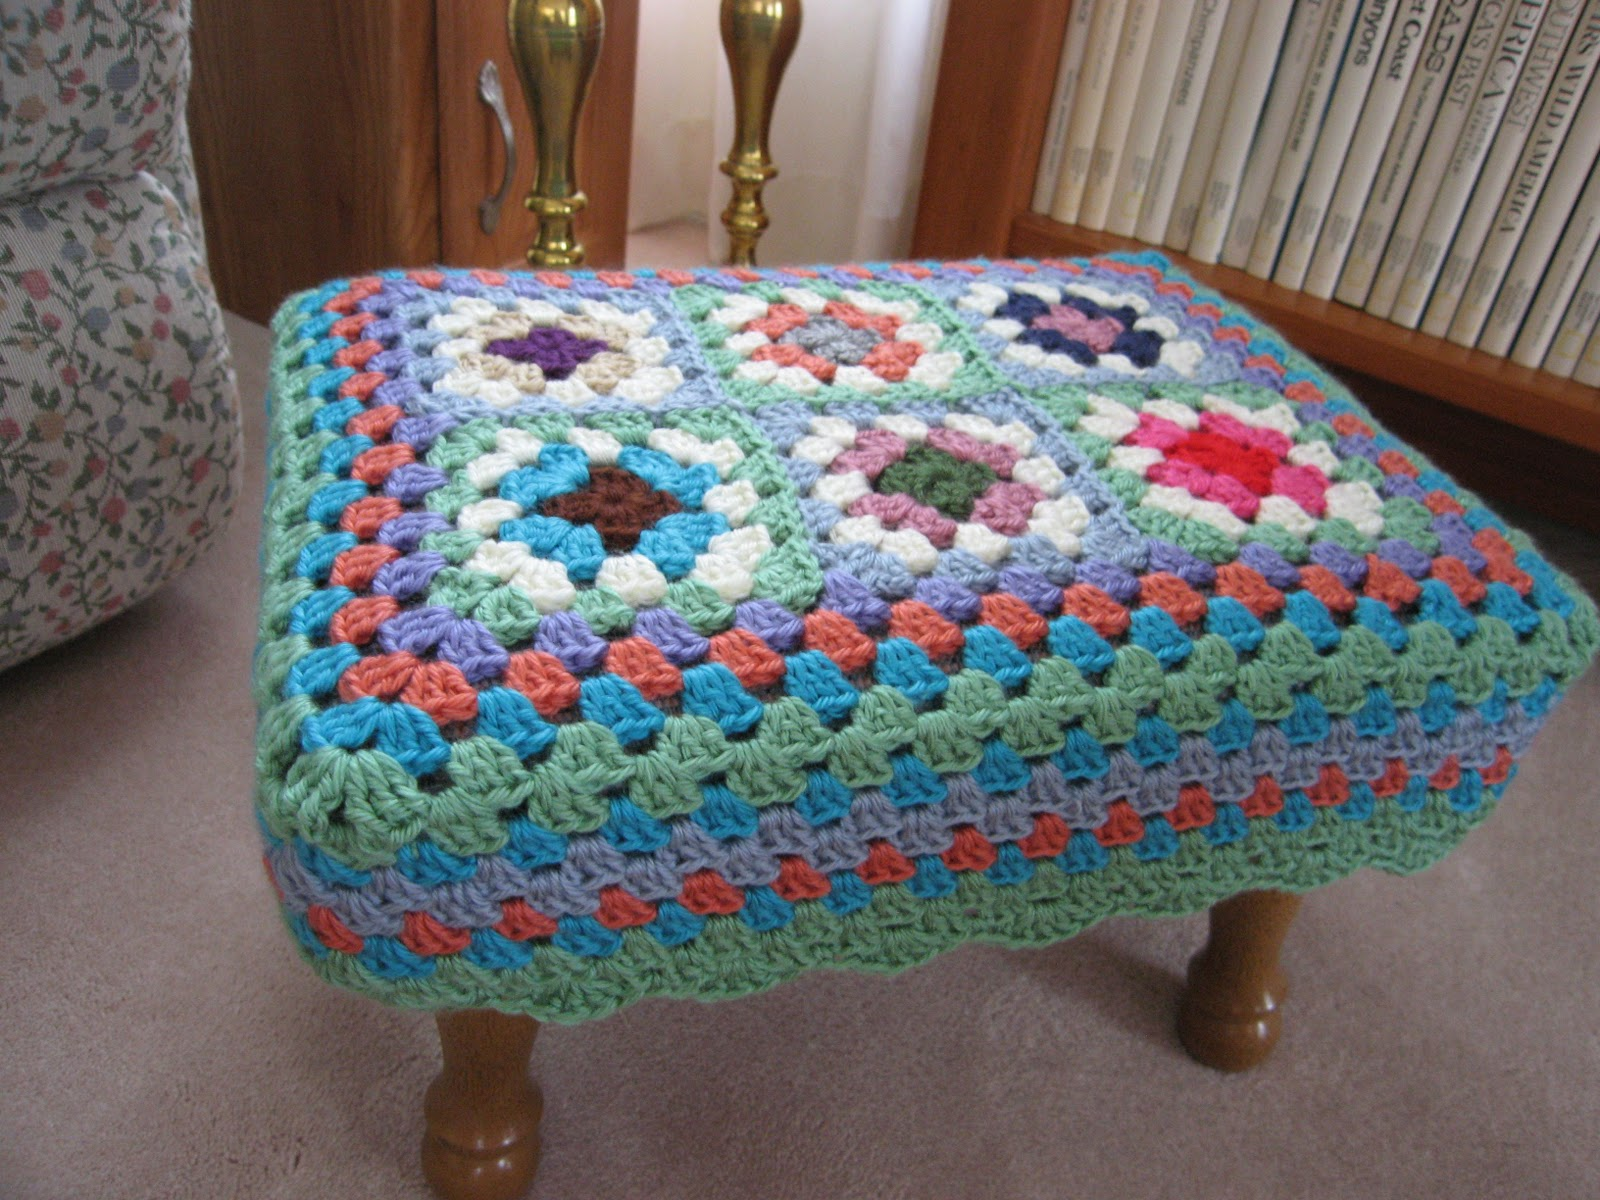 Crochet Christmas Chair Covers Ikea Chairs Living Room Teacup Lane A Different Granny Square Cover